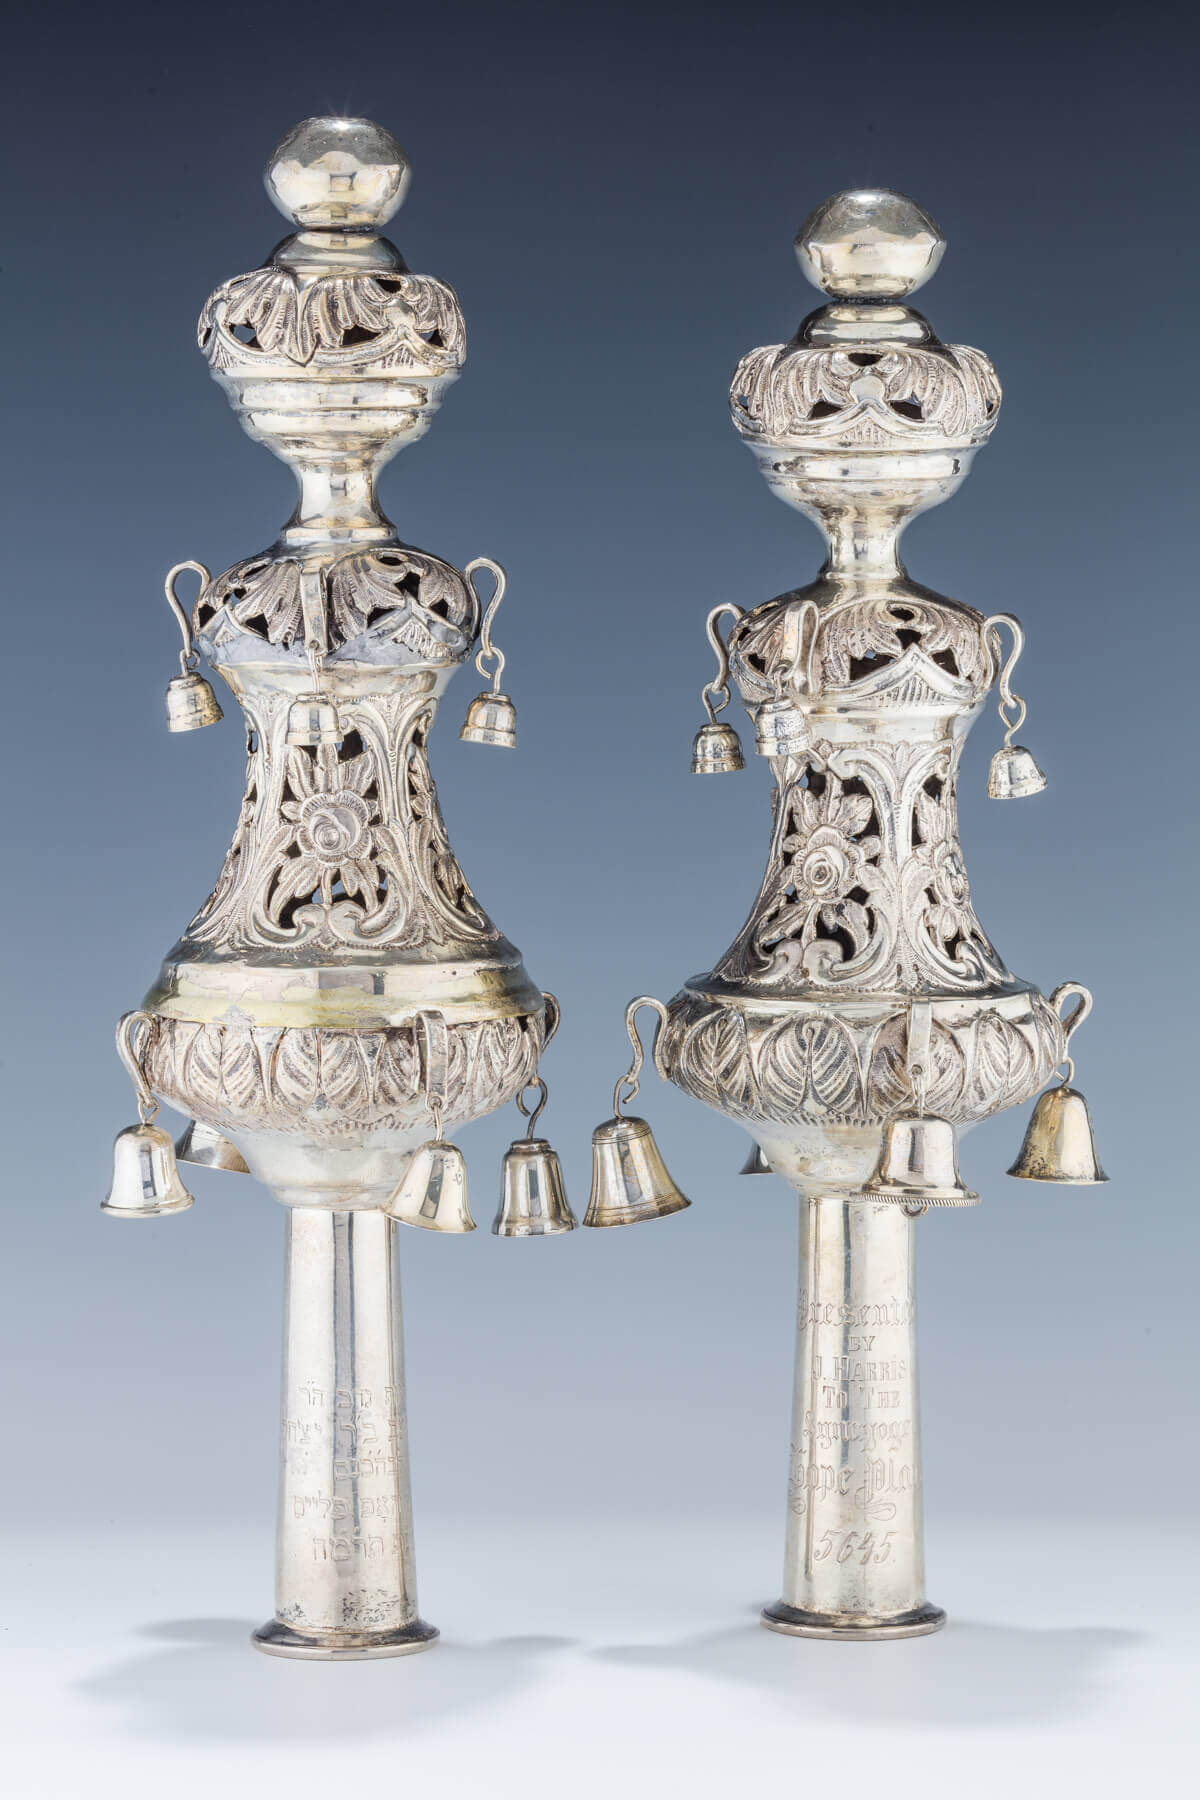 089. A PAIR OF SILVER TORAH FINIALS BY SHMUEL SKARLAT